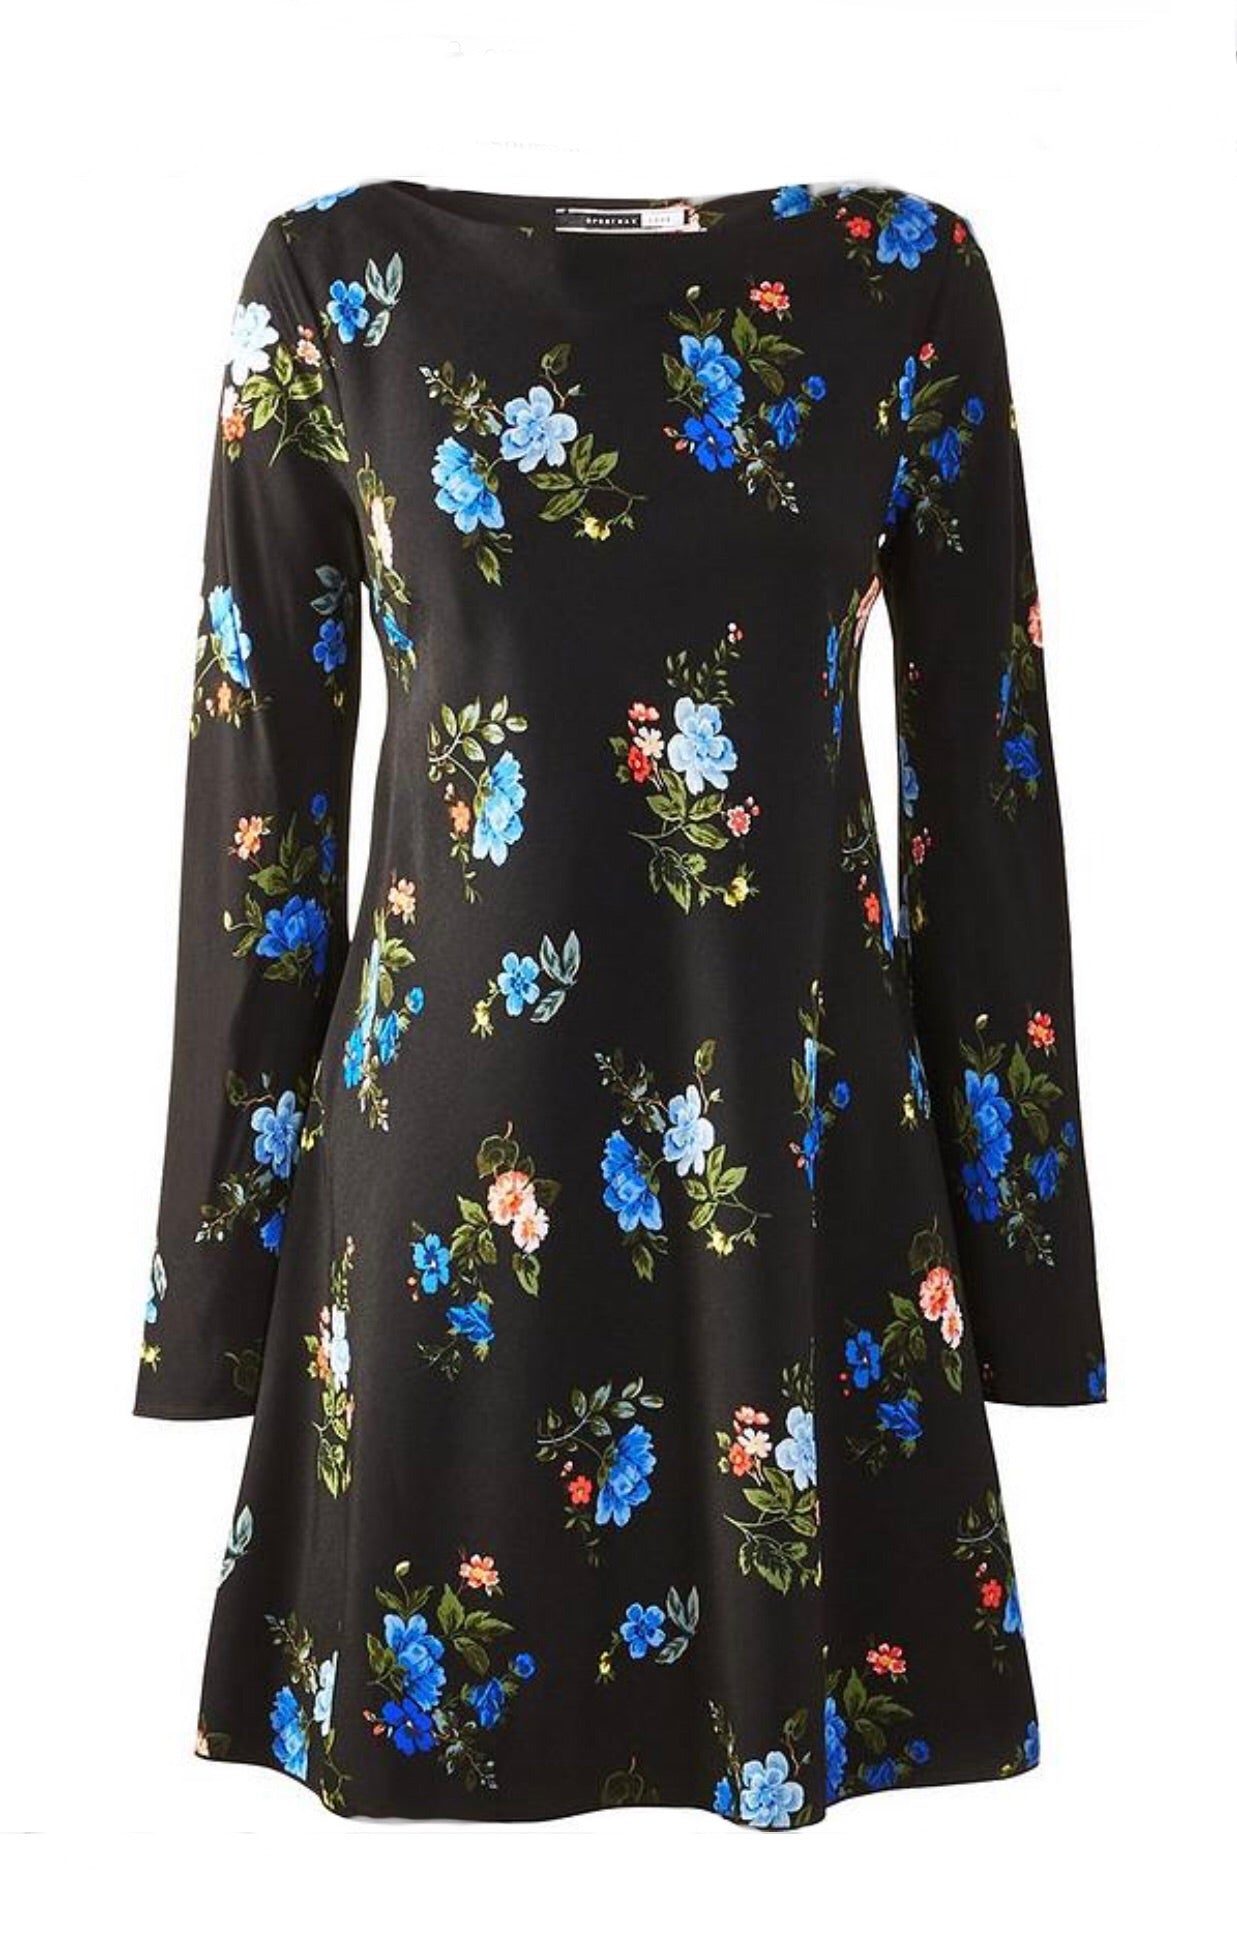 Sportmax Code Floral Dress - NWT